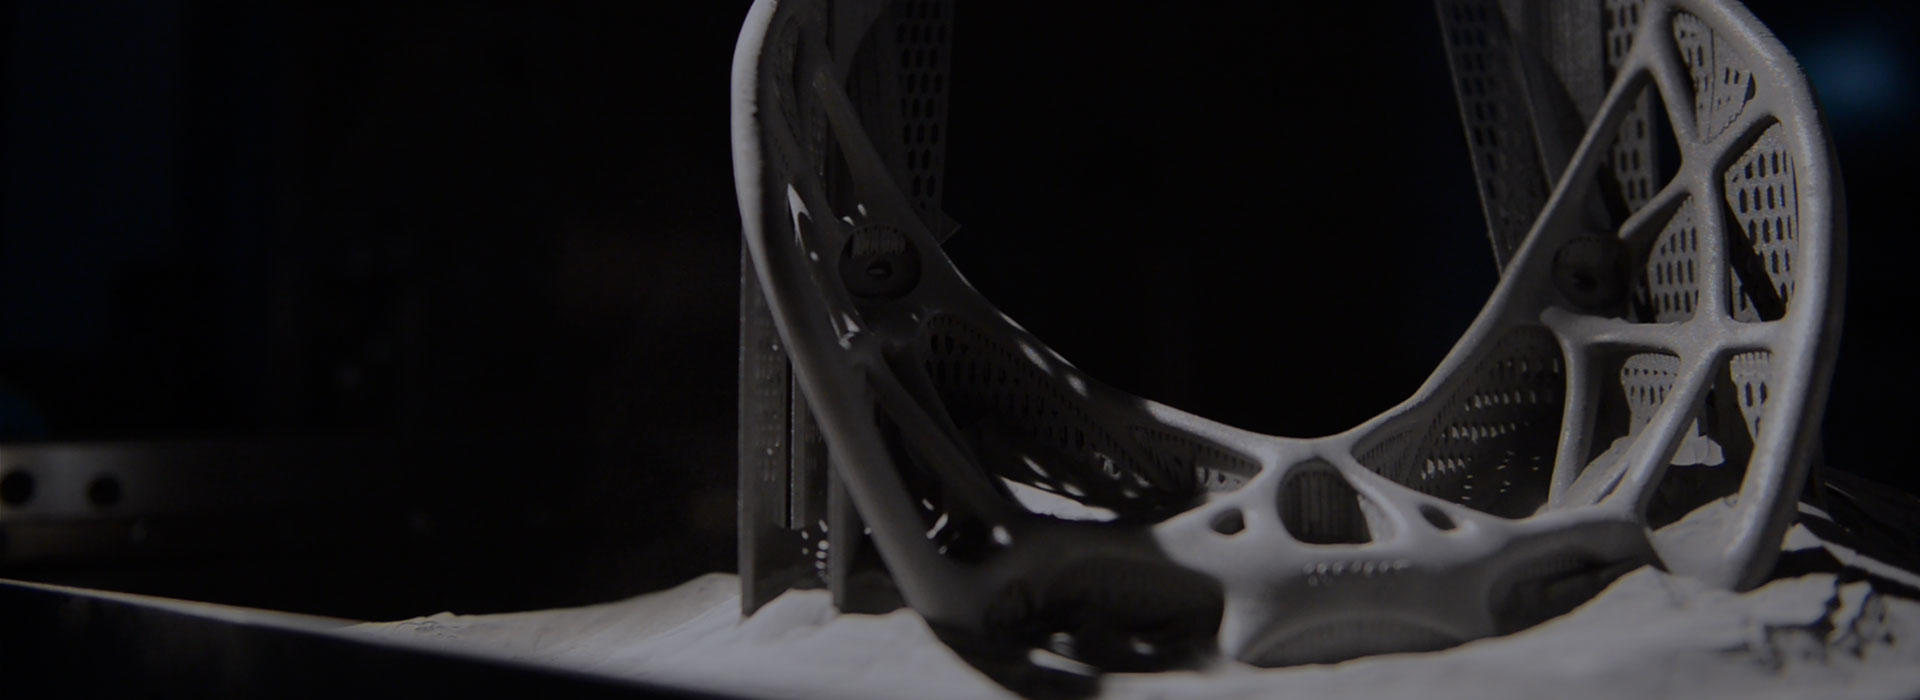 a 3D printed metal part emerging from the printer, surrounded by metal powder